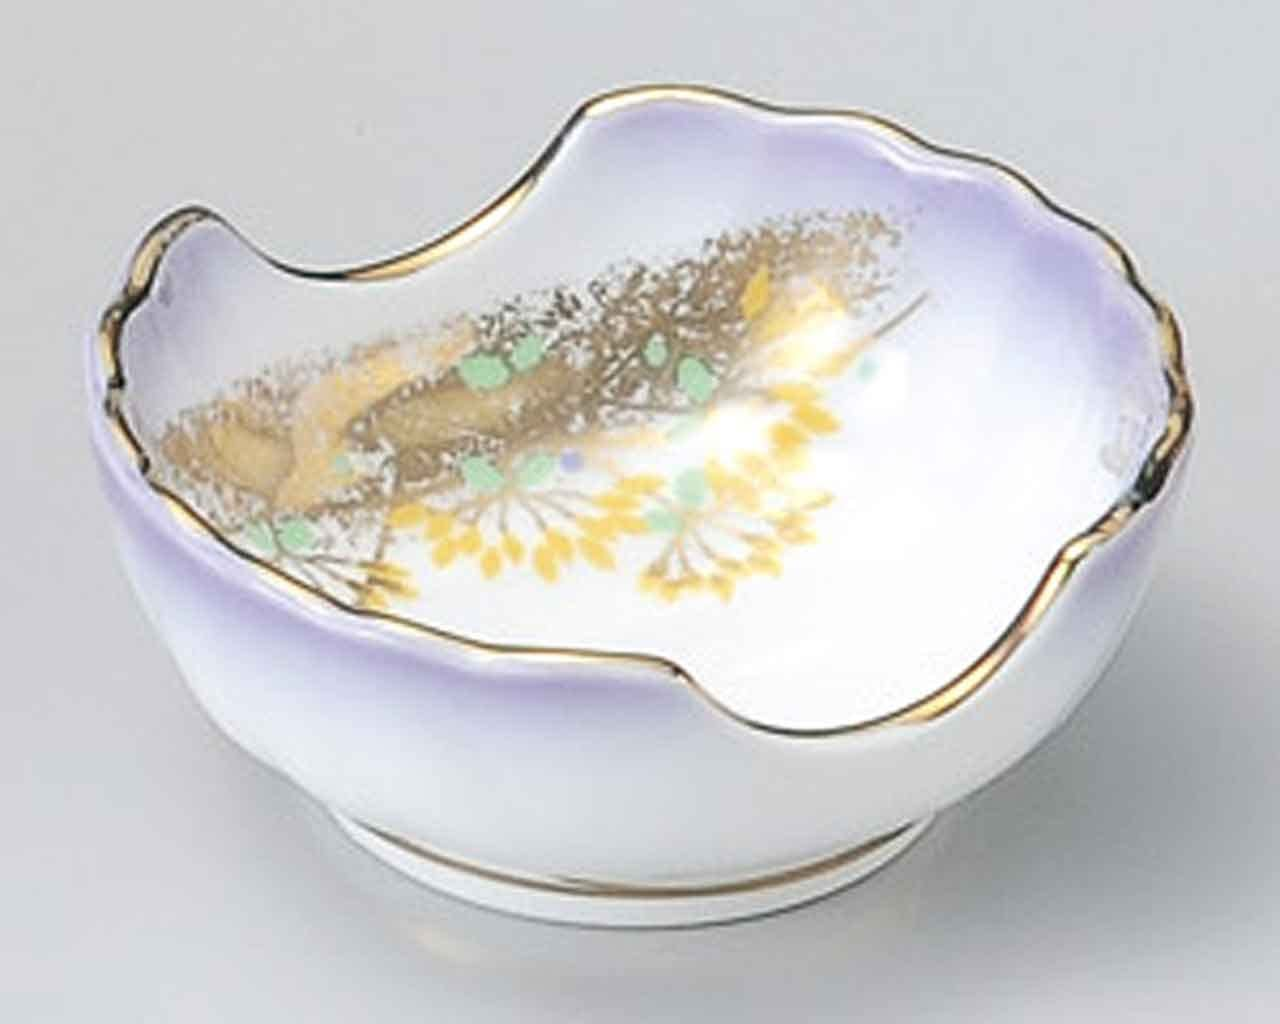 Azumino 2.9inch Set of 5 Small store White Bowls in Popular brand porcelain Made Jap